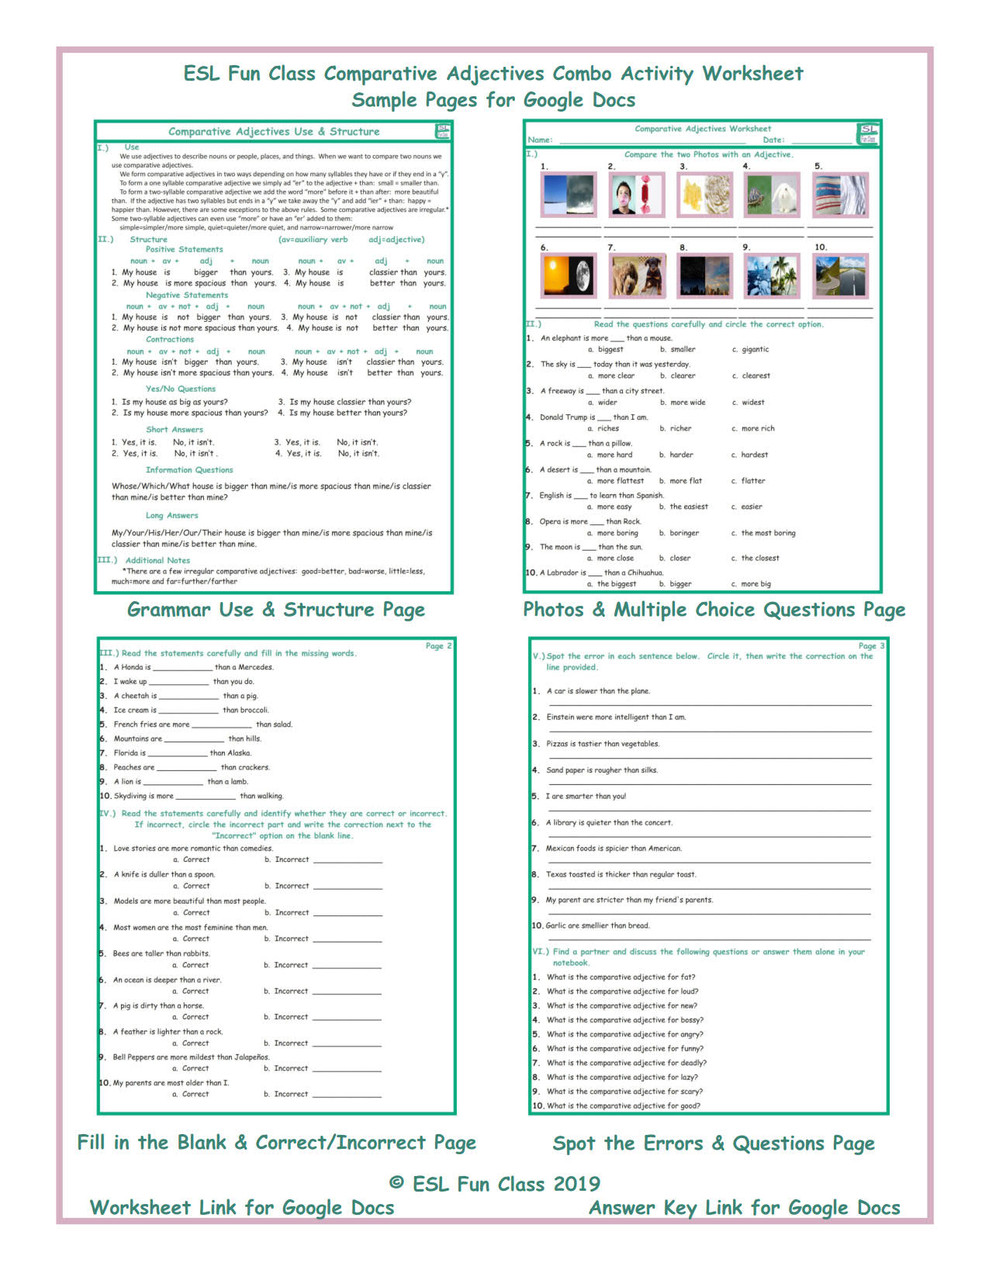 Comparative Adjectives Combo Interactive Worksheets for Google Docs LINKS -  Amped Up Learning [ 1280 x 989 Pixel ]